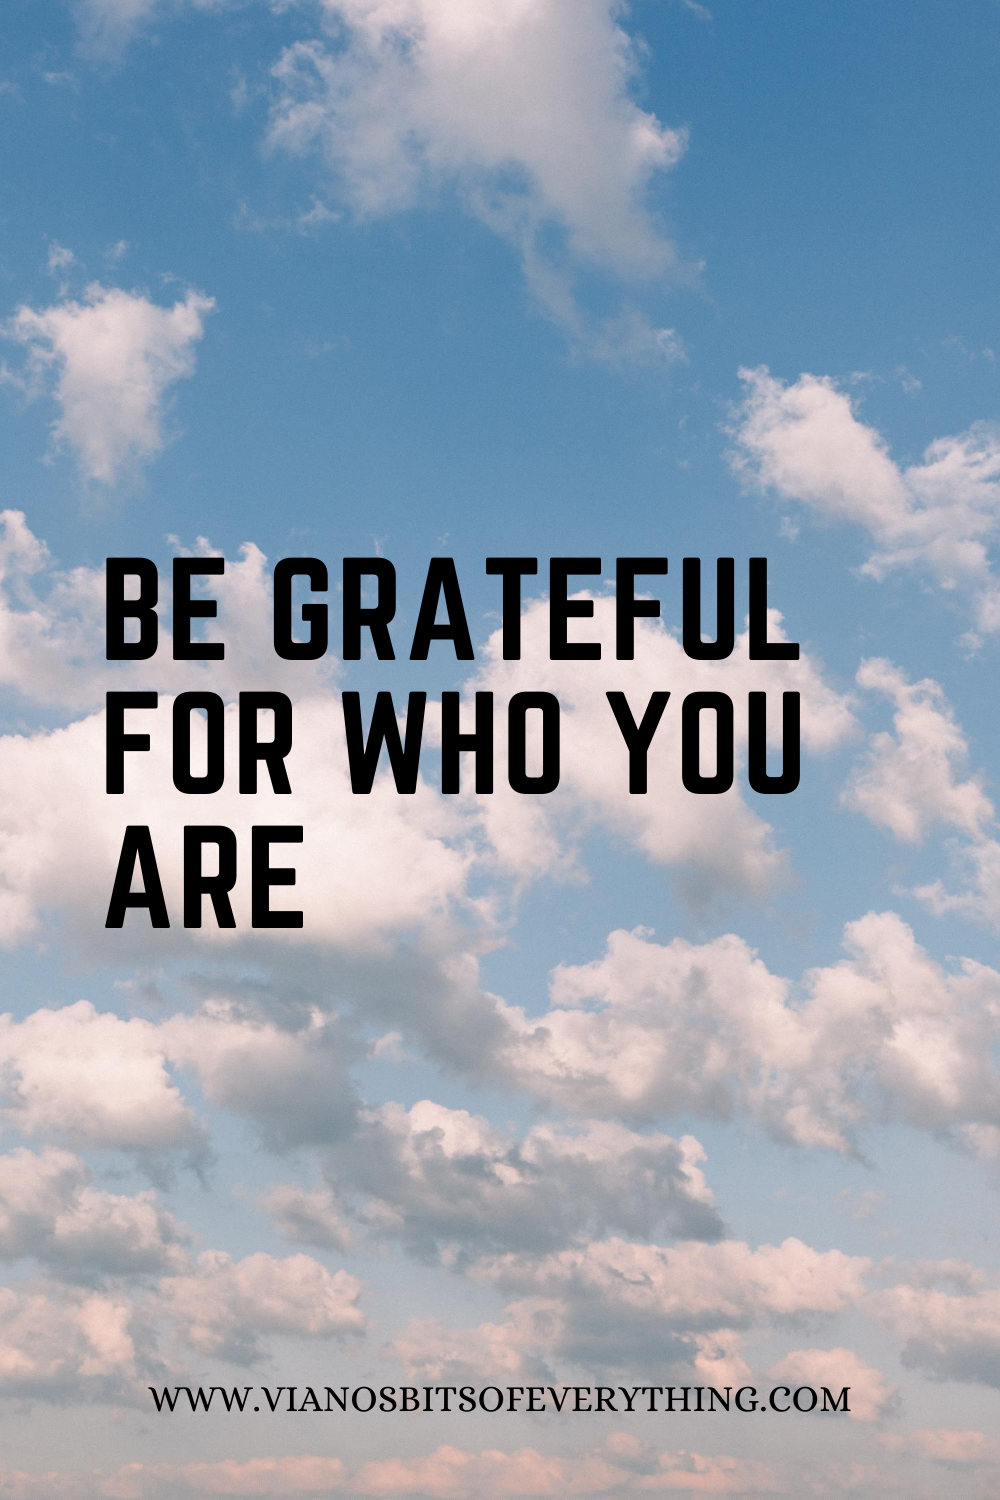 Be Grateful For Who You Are!